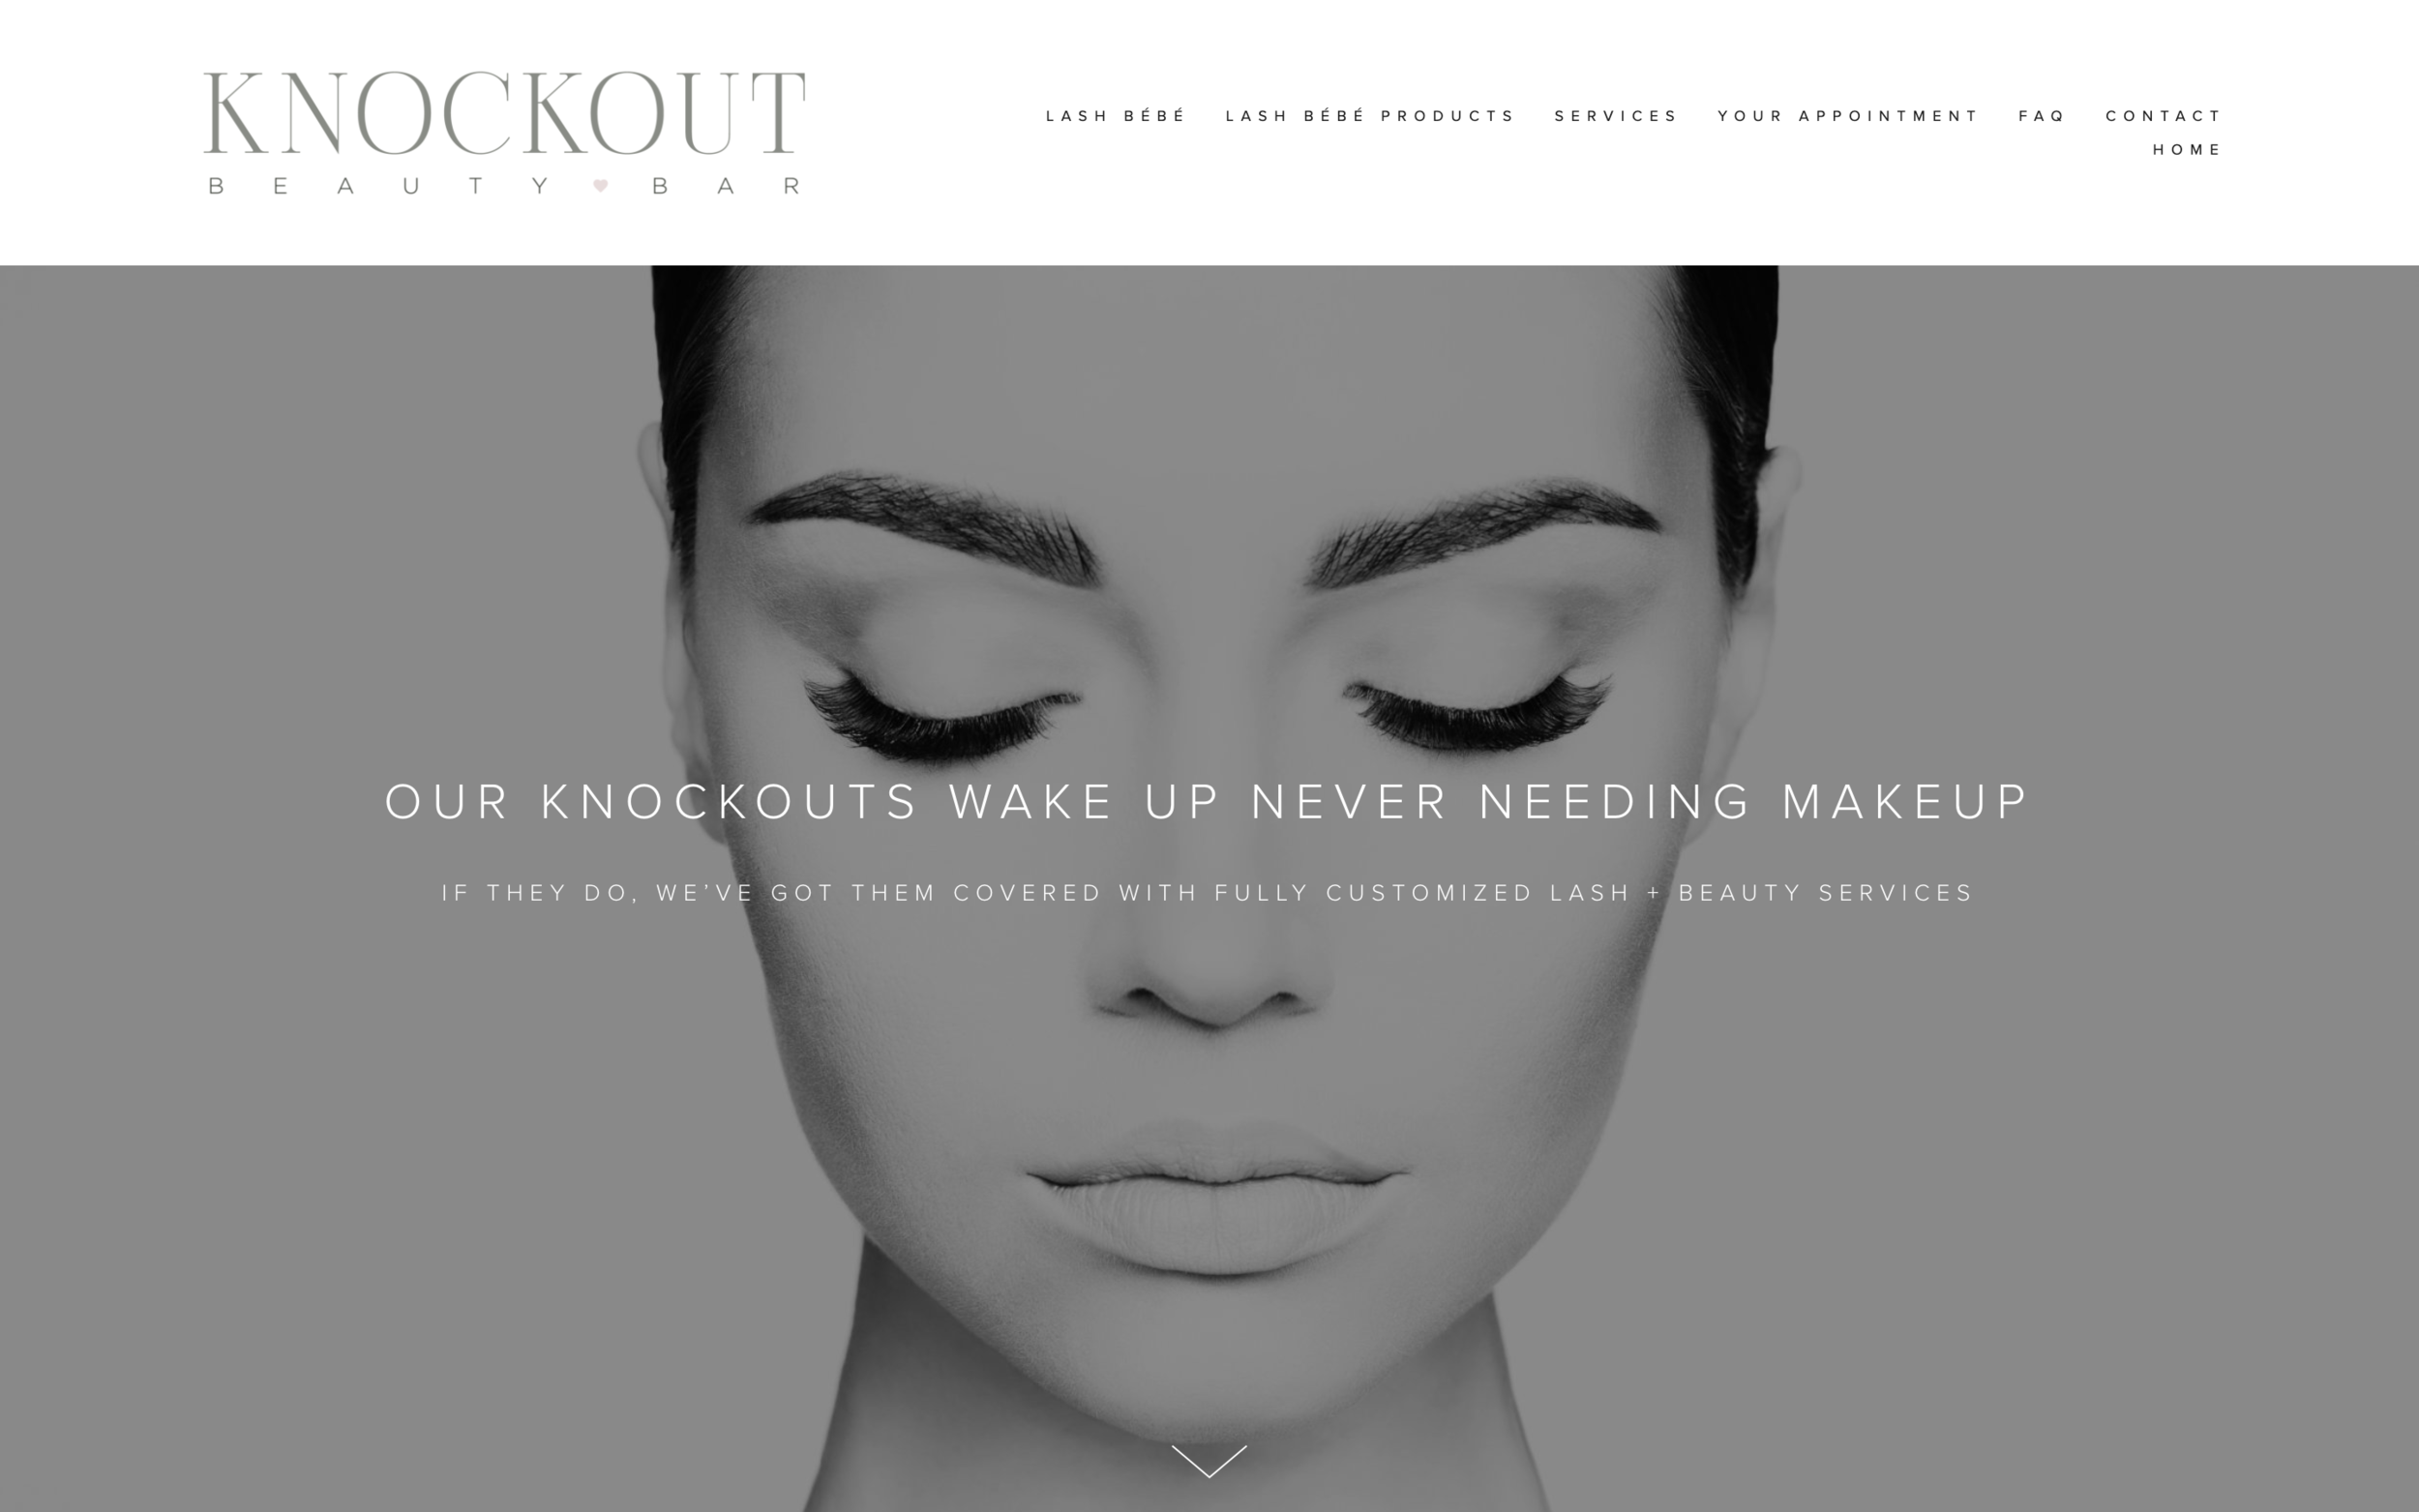 knockout_beauty_bar_1.png